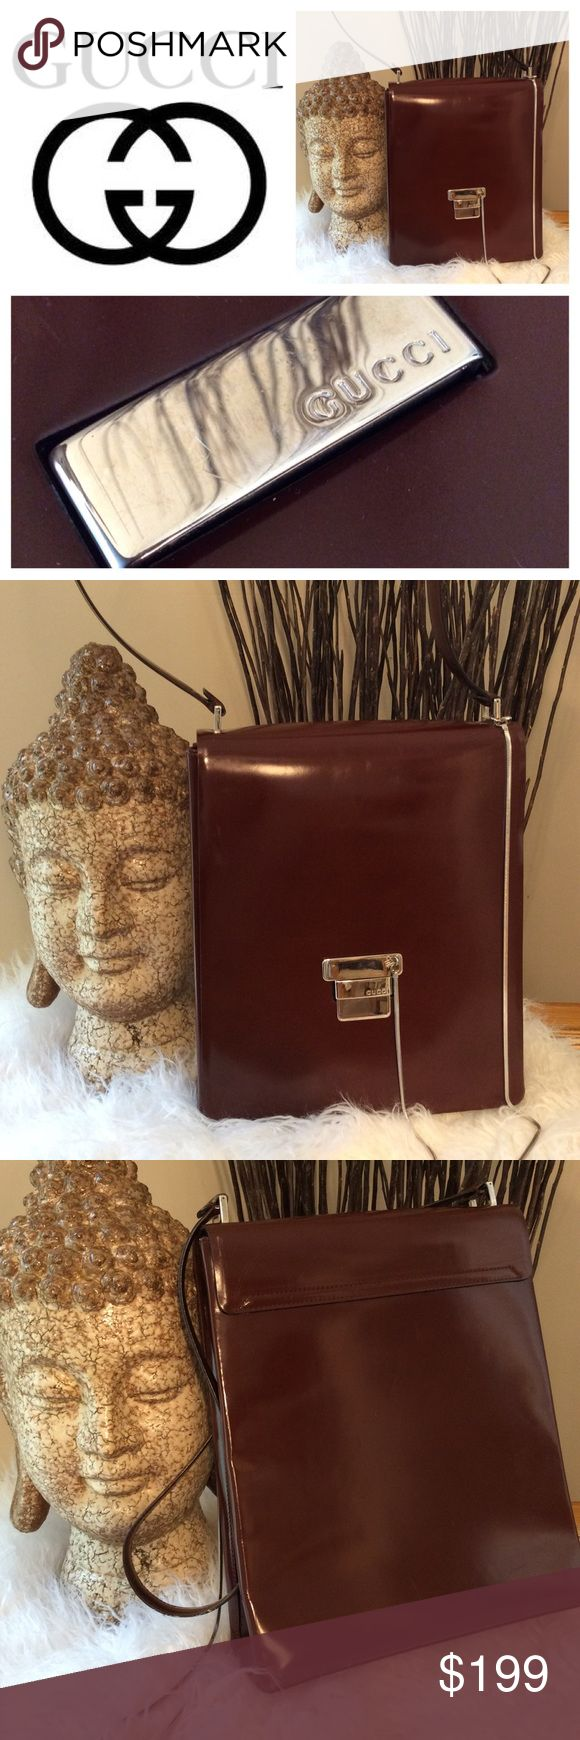 Gucci Leather Vintage Bag with Chain Detail Gorgeous burgundy leather and stunning design.  Serial number shown in photos.  The lining on this bag was replaced and branded inside zipper pull is still intact. This is a standout, unique piece  for sure!  EUC See photos for serial number and measurements ***Need more ideas for what to wear to an upcoming event or to suit a new life change? Contact a Sweetpetunya Stylist (shop@sweetpetunya.com)  for a live consultation. We're here to help…